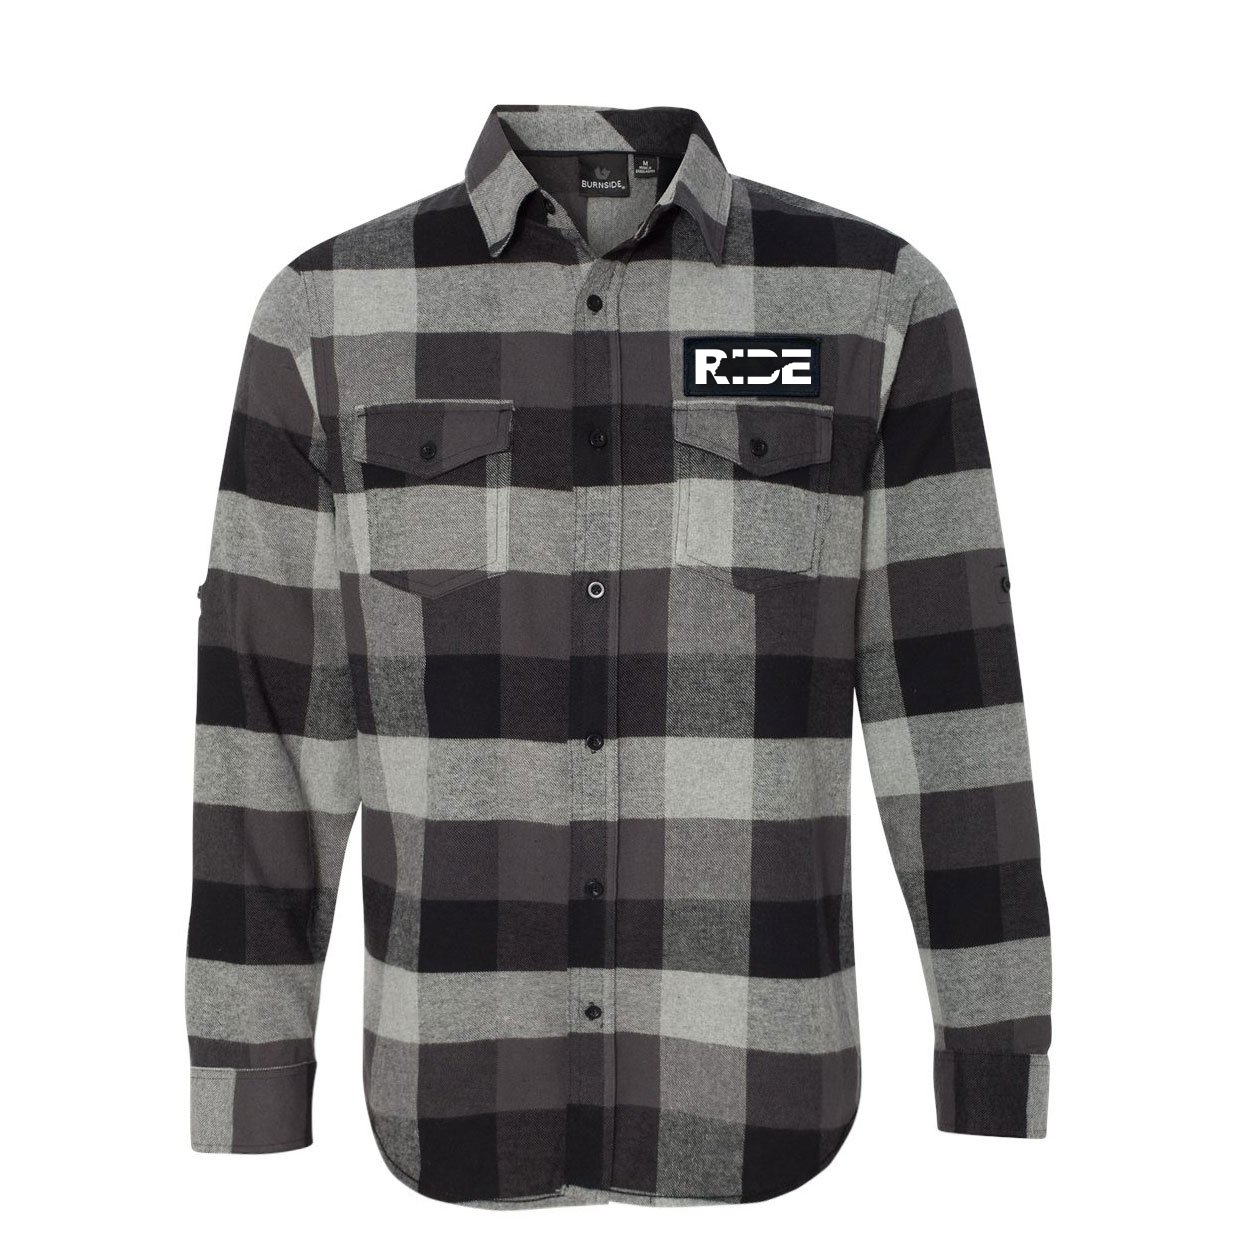 Ride Tennessee Classic Unisex Long Sleeve Woven Patch Flannel Shirt Black/Gray (White Logo)